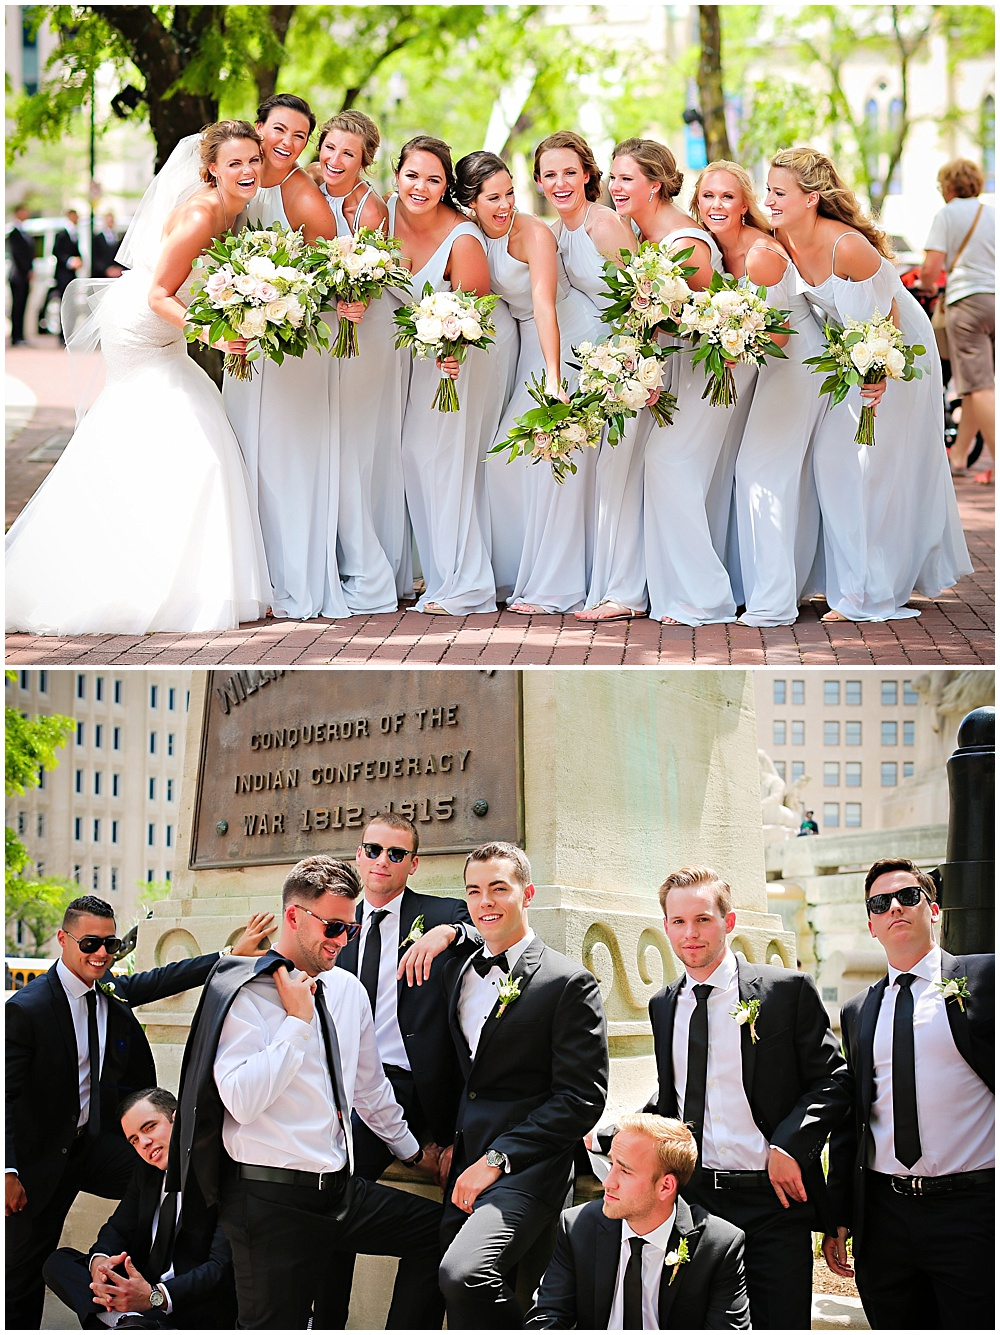 light blue bridesmaid dresses with green and white bouquets | elegant gold downtown wedding | Jessica Strickland Photography and Jessica Dum Wedding Coordination